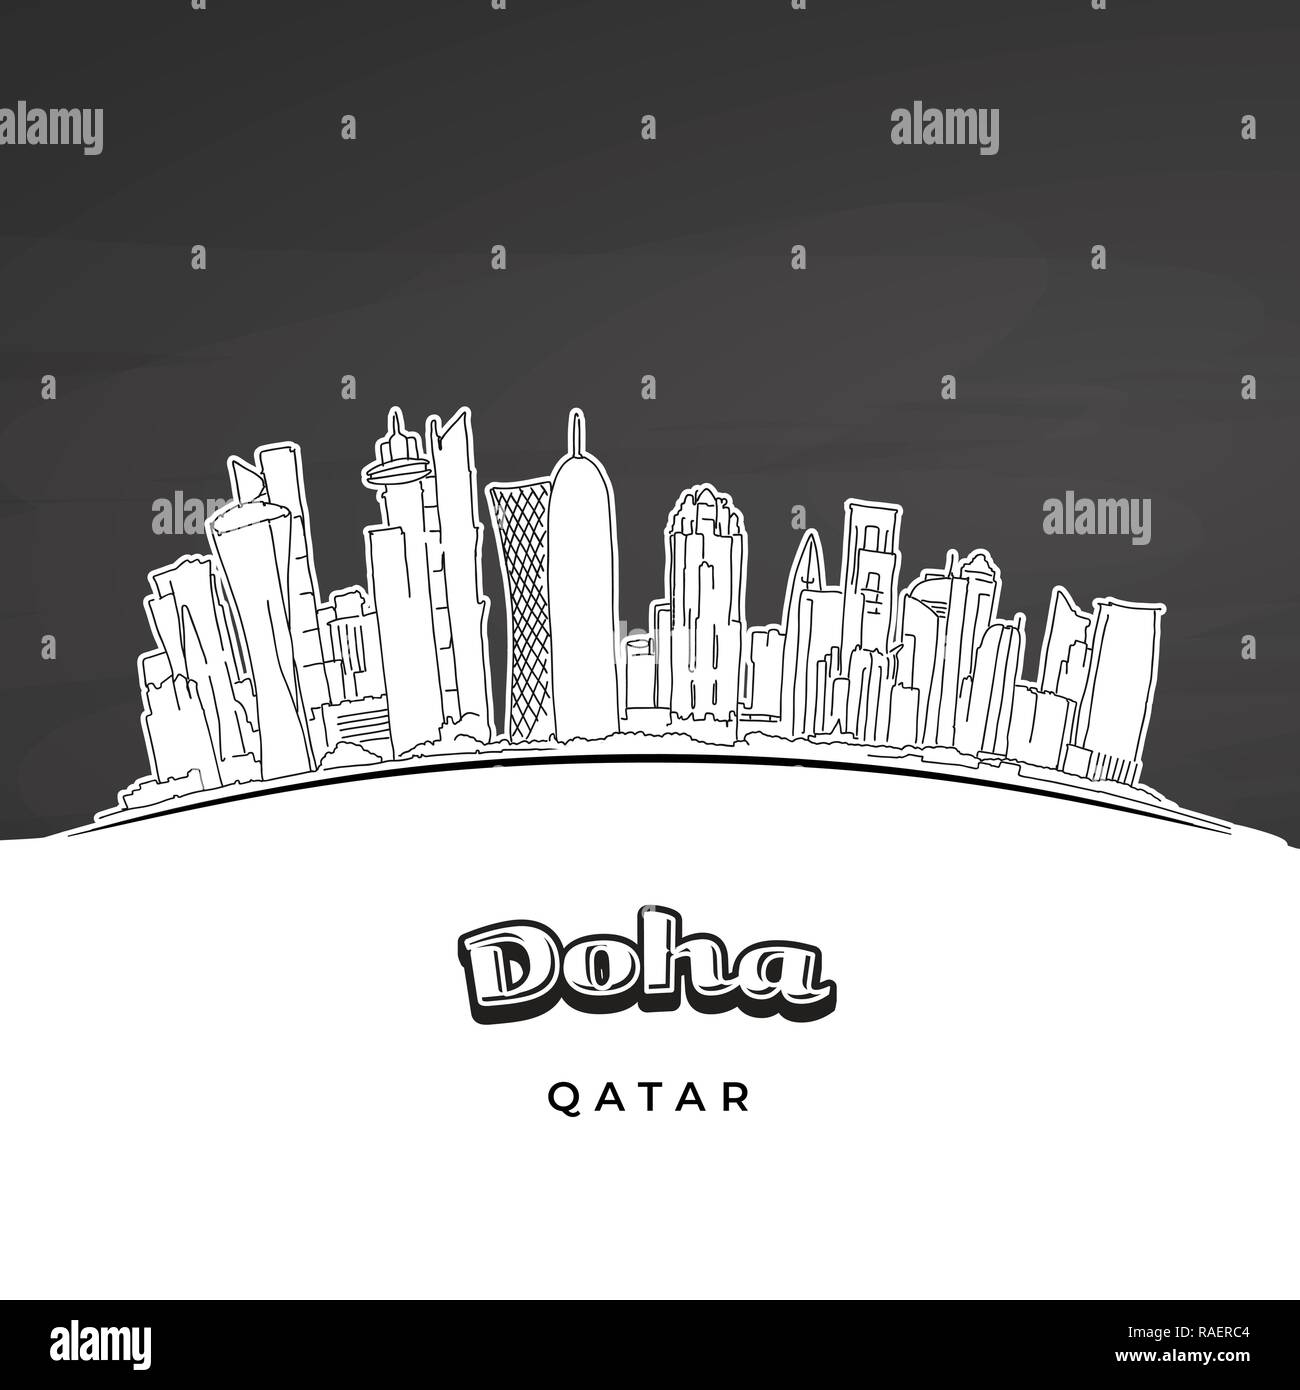 Doha Qatar skyline outline. Hand-drawn vector illustration. Famous travel destinations series. - Stock Vector